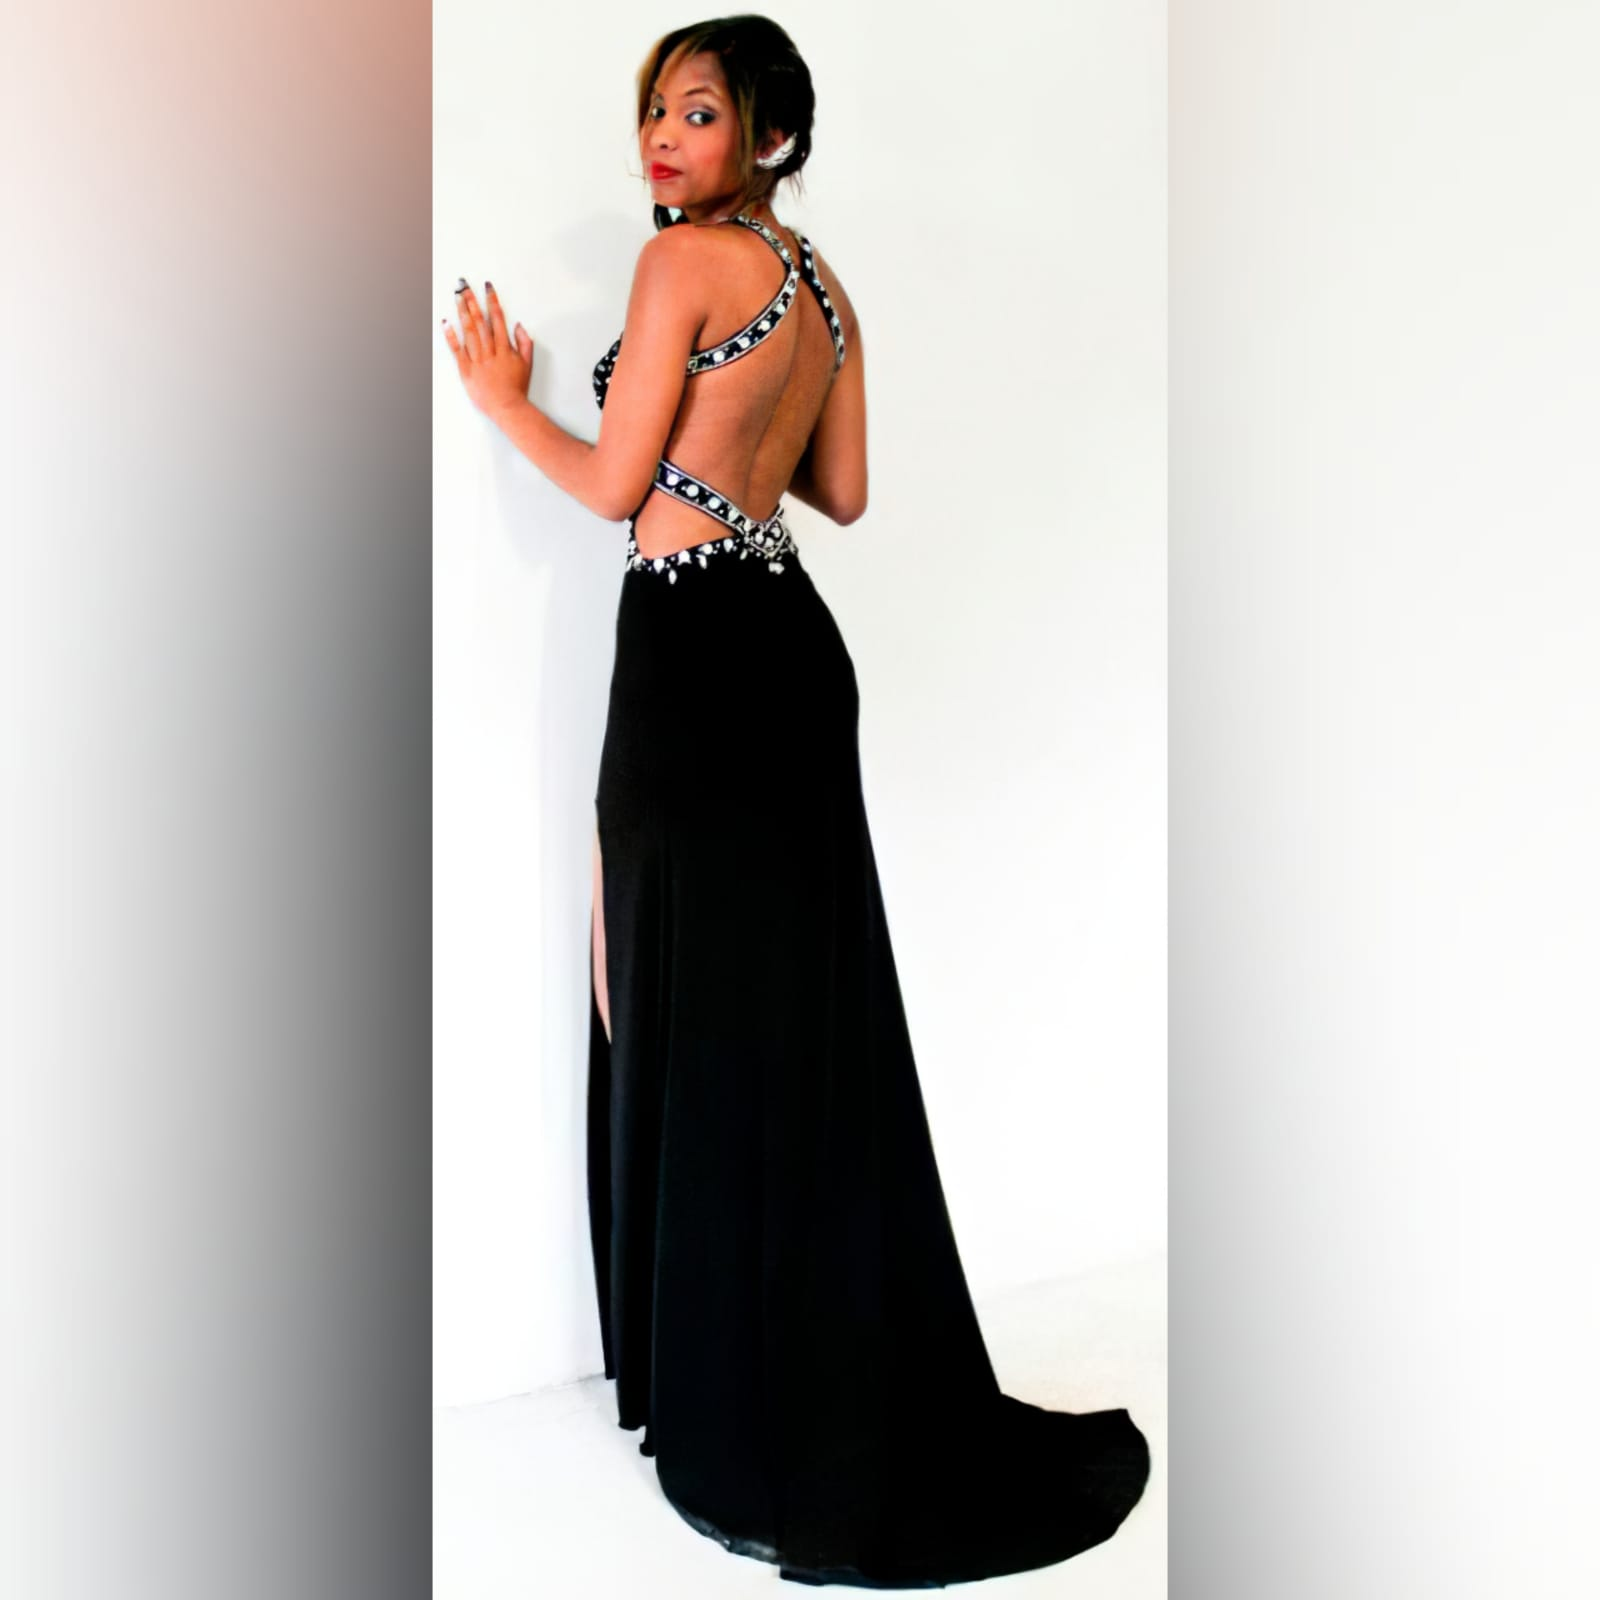 Black and silver prom dress with a low open back 1 black & silver prom dress with a low open back, a slit and train. Slightly open on the side of the tummy. Back straps and bodice detailed with silver beads and diamante